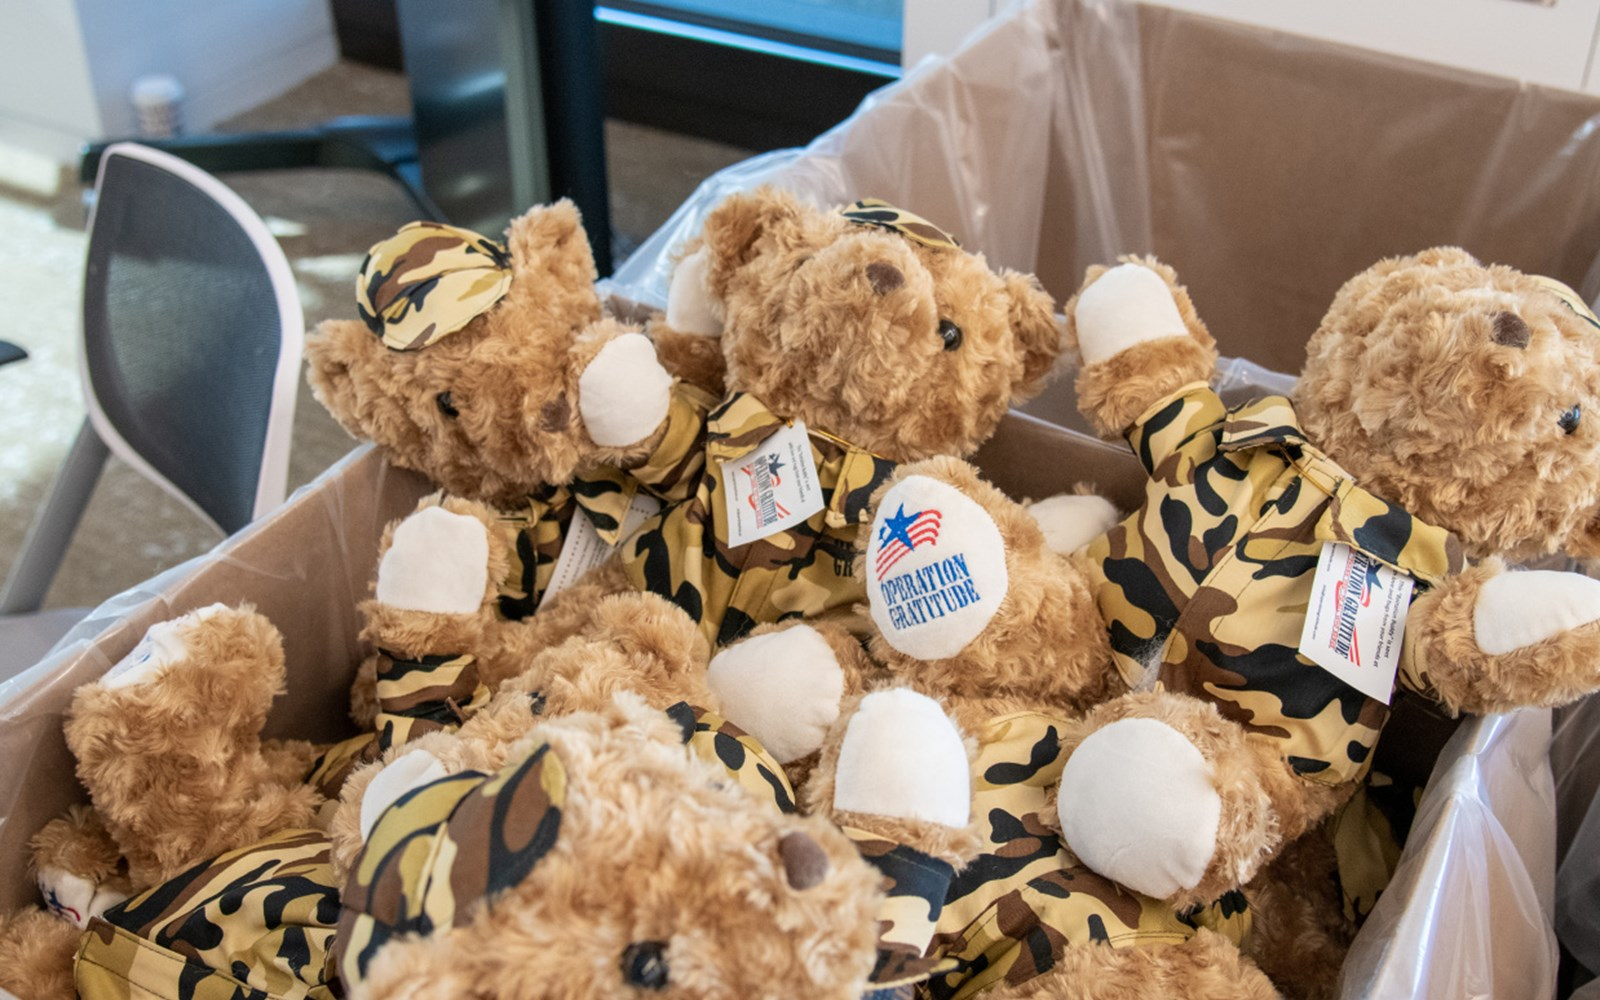 Volunteers assembled Battalion Buddy Bears, made paracord bracelets and wrote letters of gratitude